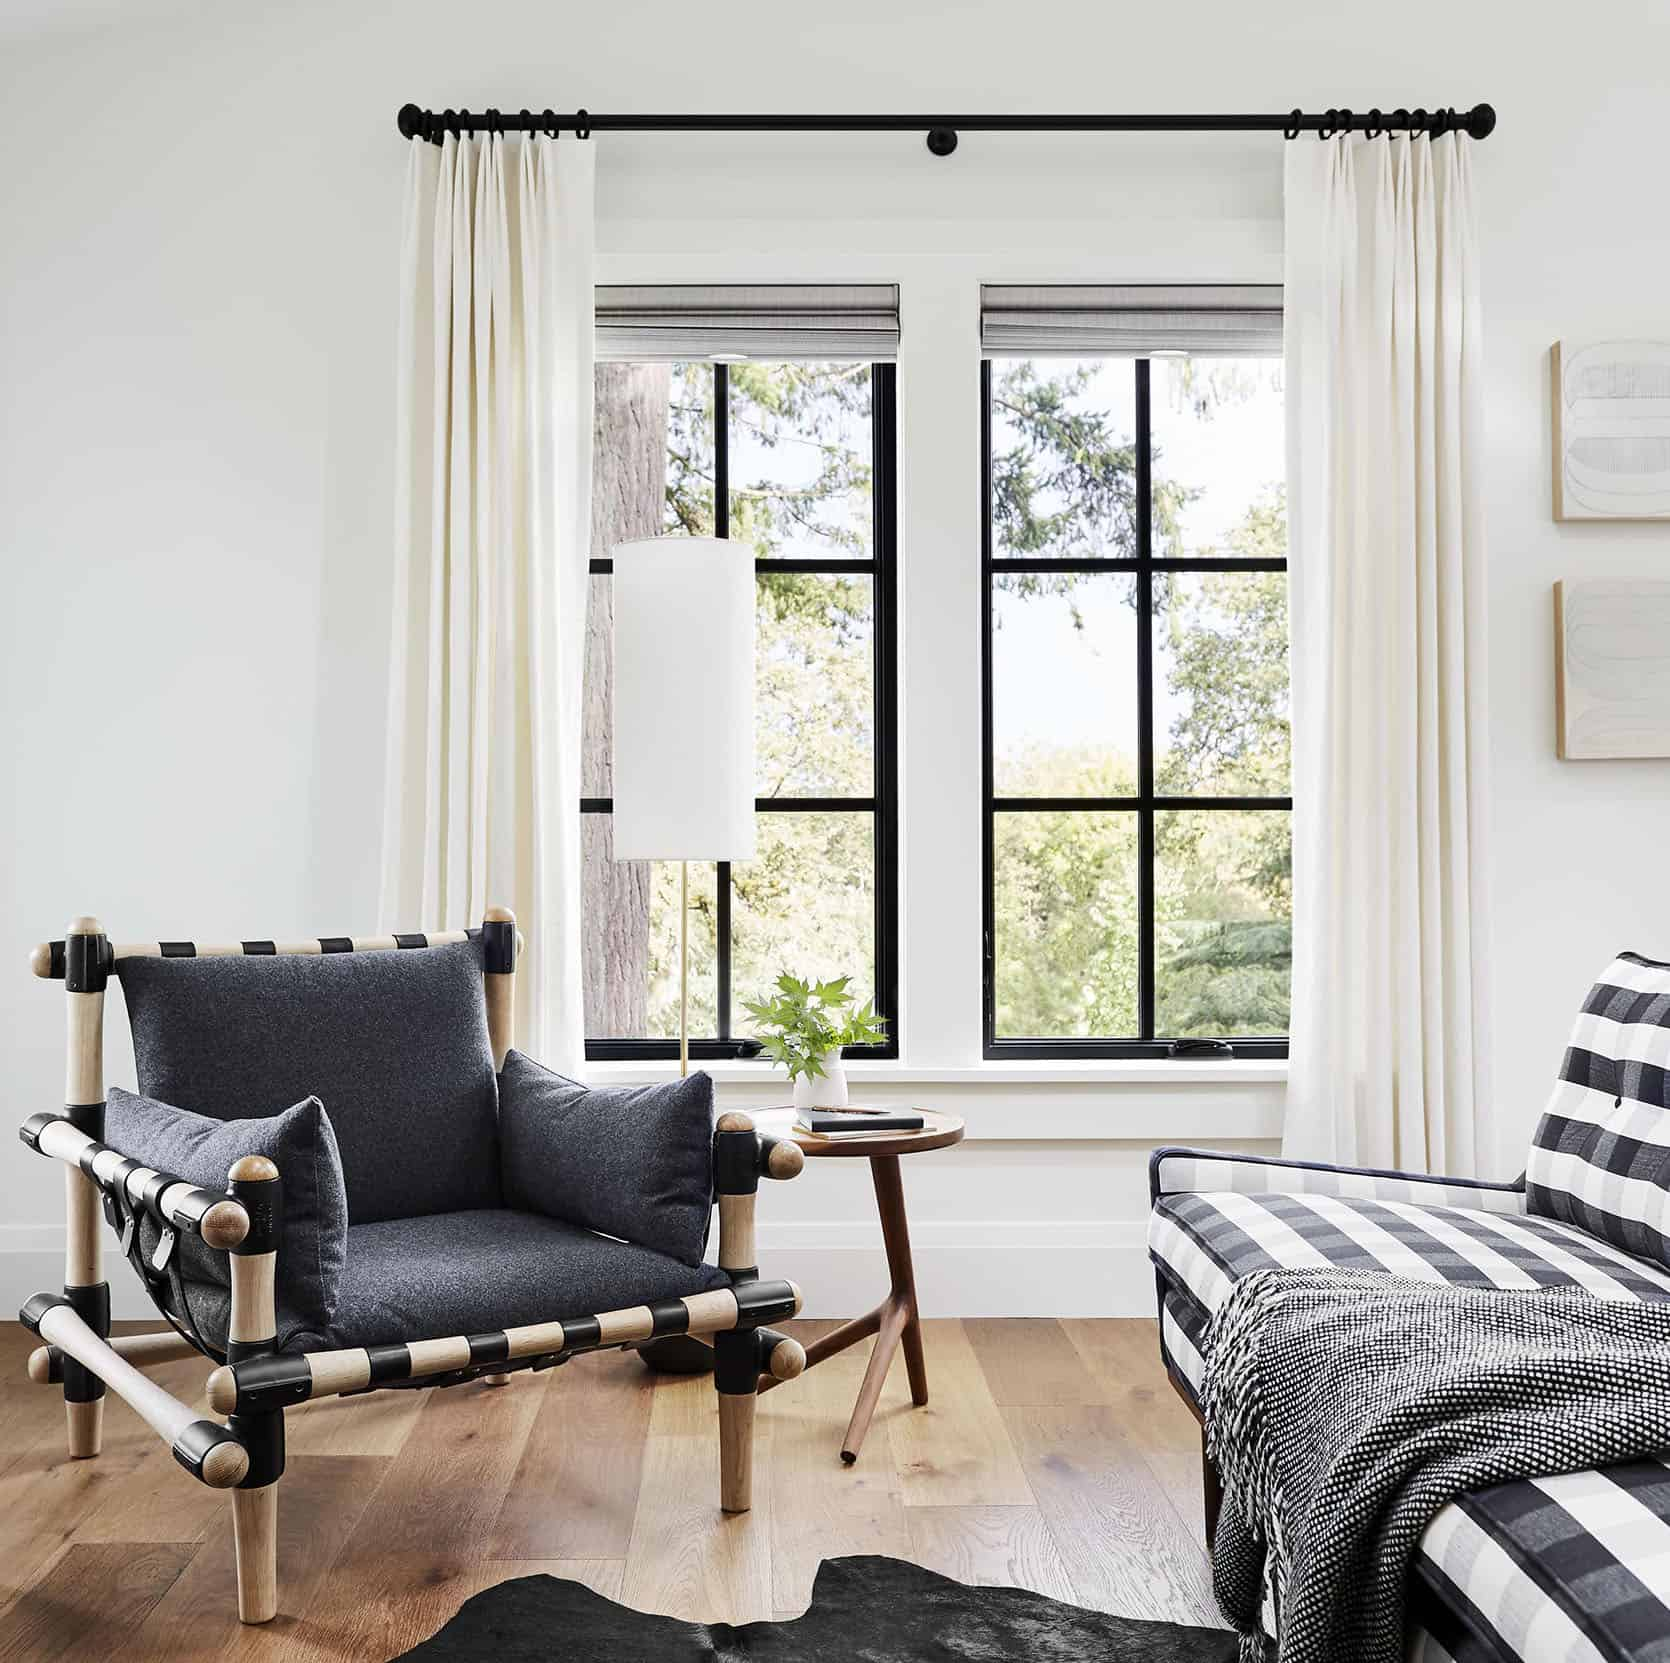 Wake Up When You Want Super Affordable Blackout Shades And Curtains Emily Henderson